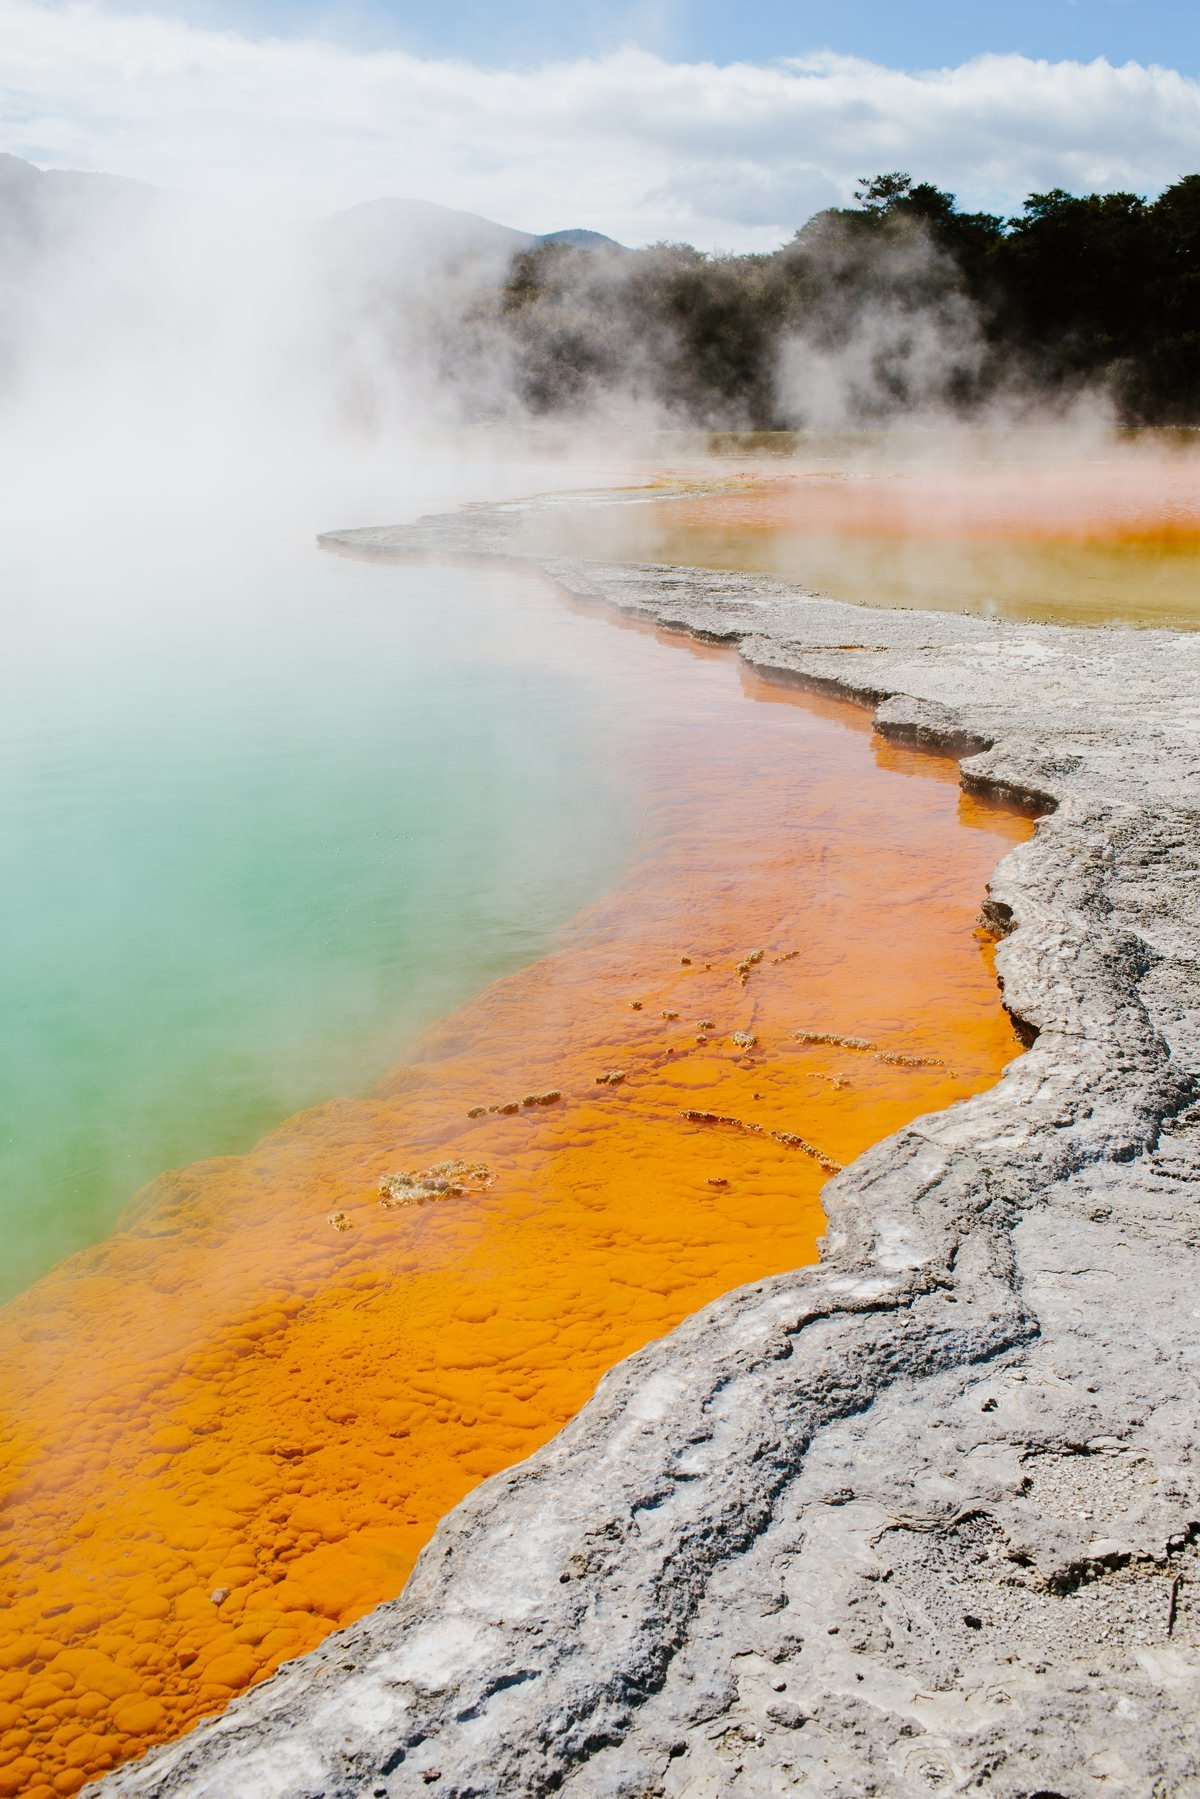 cameron-zegers-travel-photographer-new-zealand-geothermal